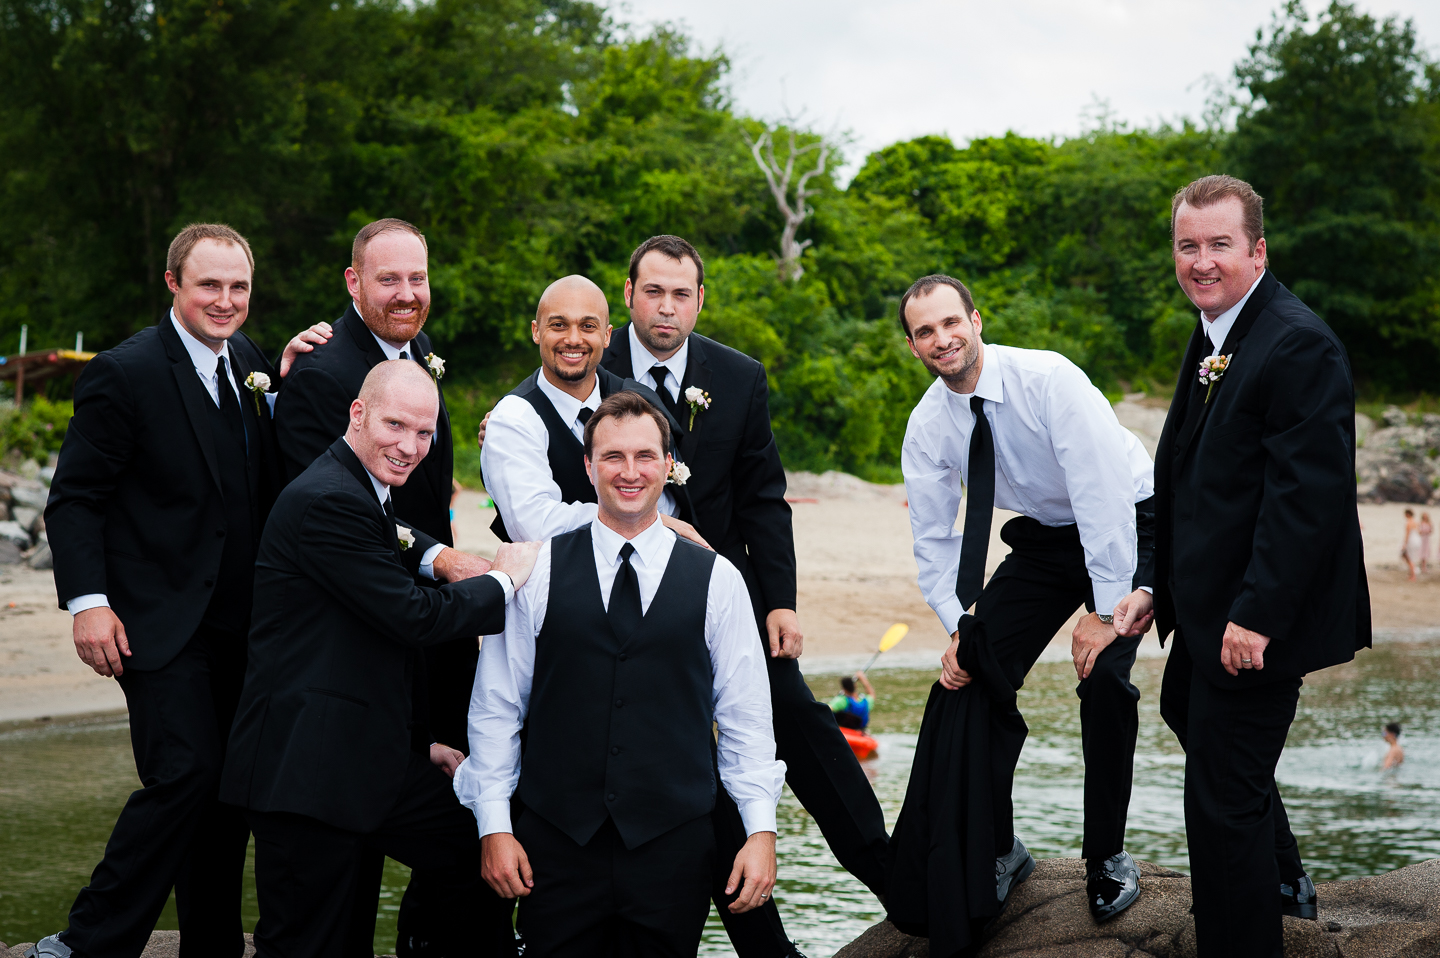 The handsome groom and his guys pose for a fun picture by the ocean